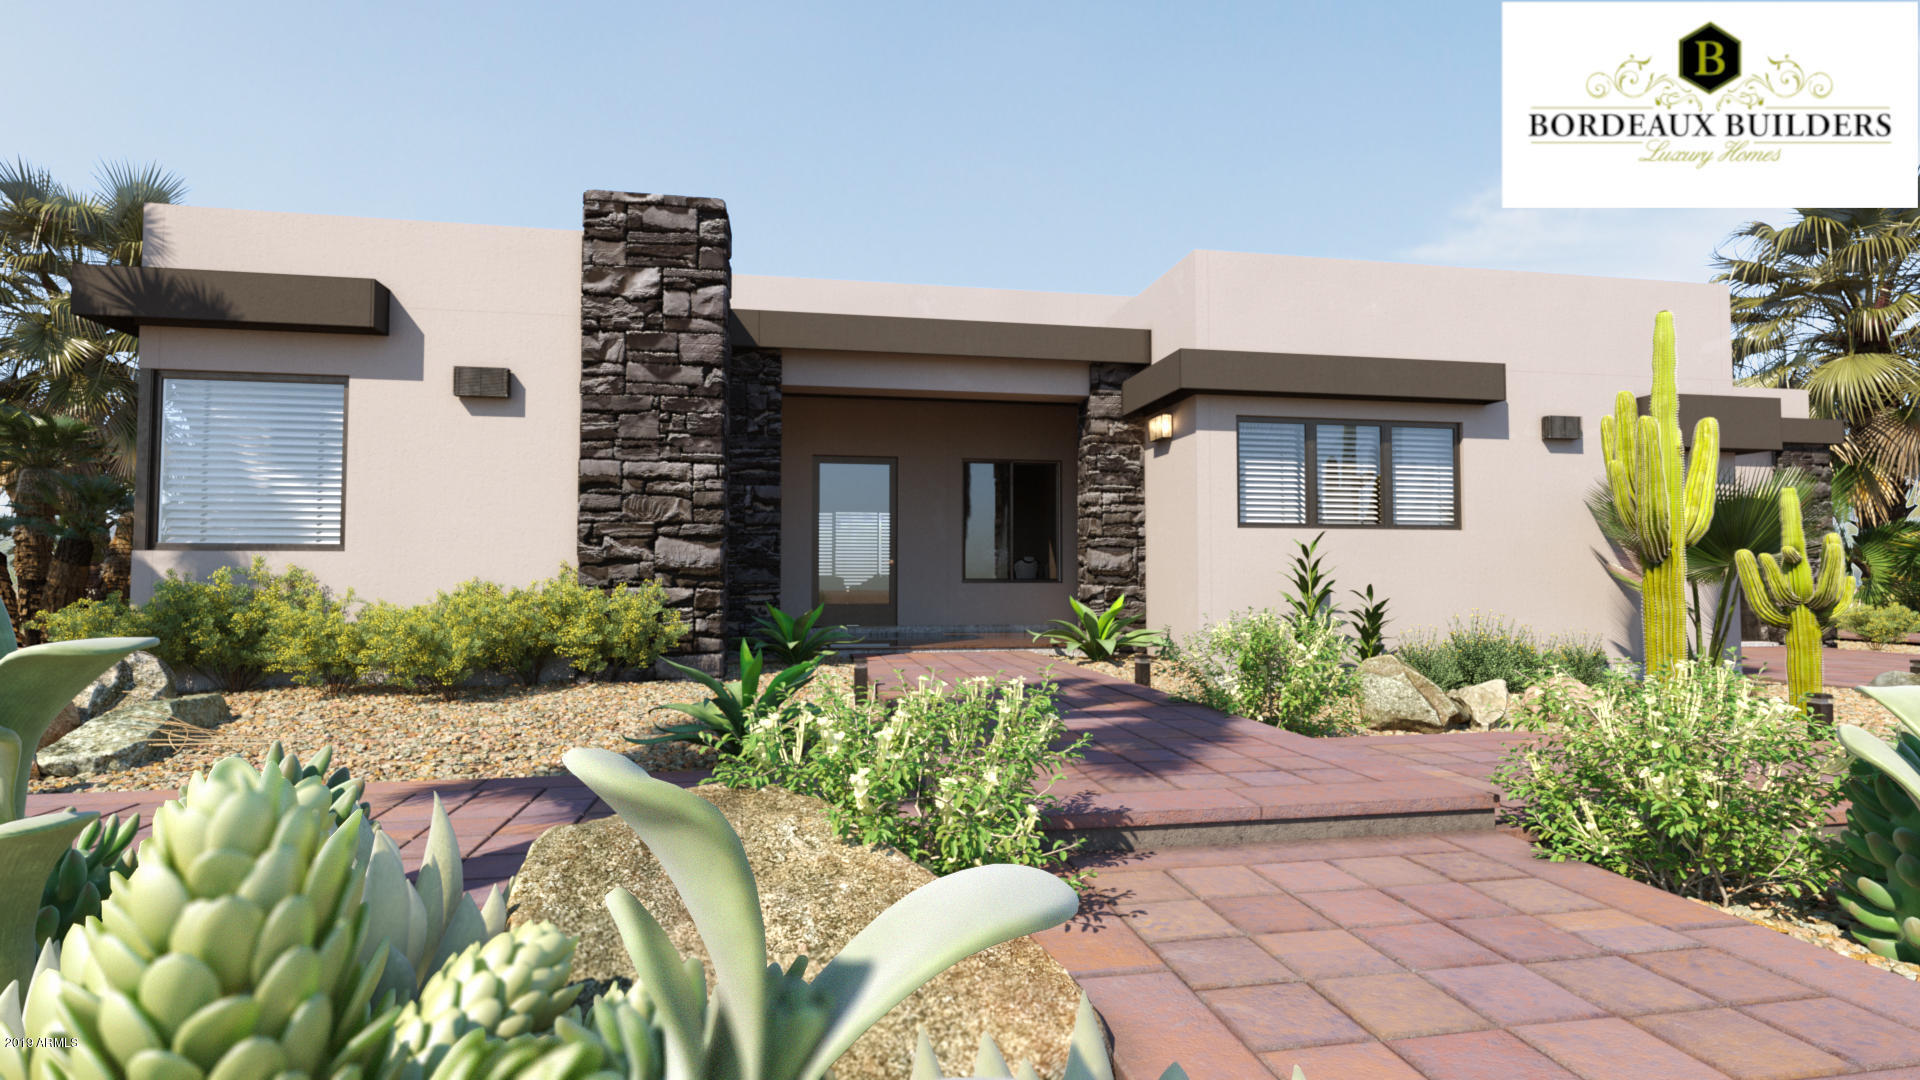 15421 E CRESTED BUTTE Trail, Fountain Hills, Arizona